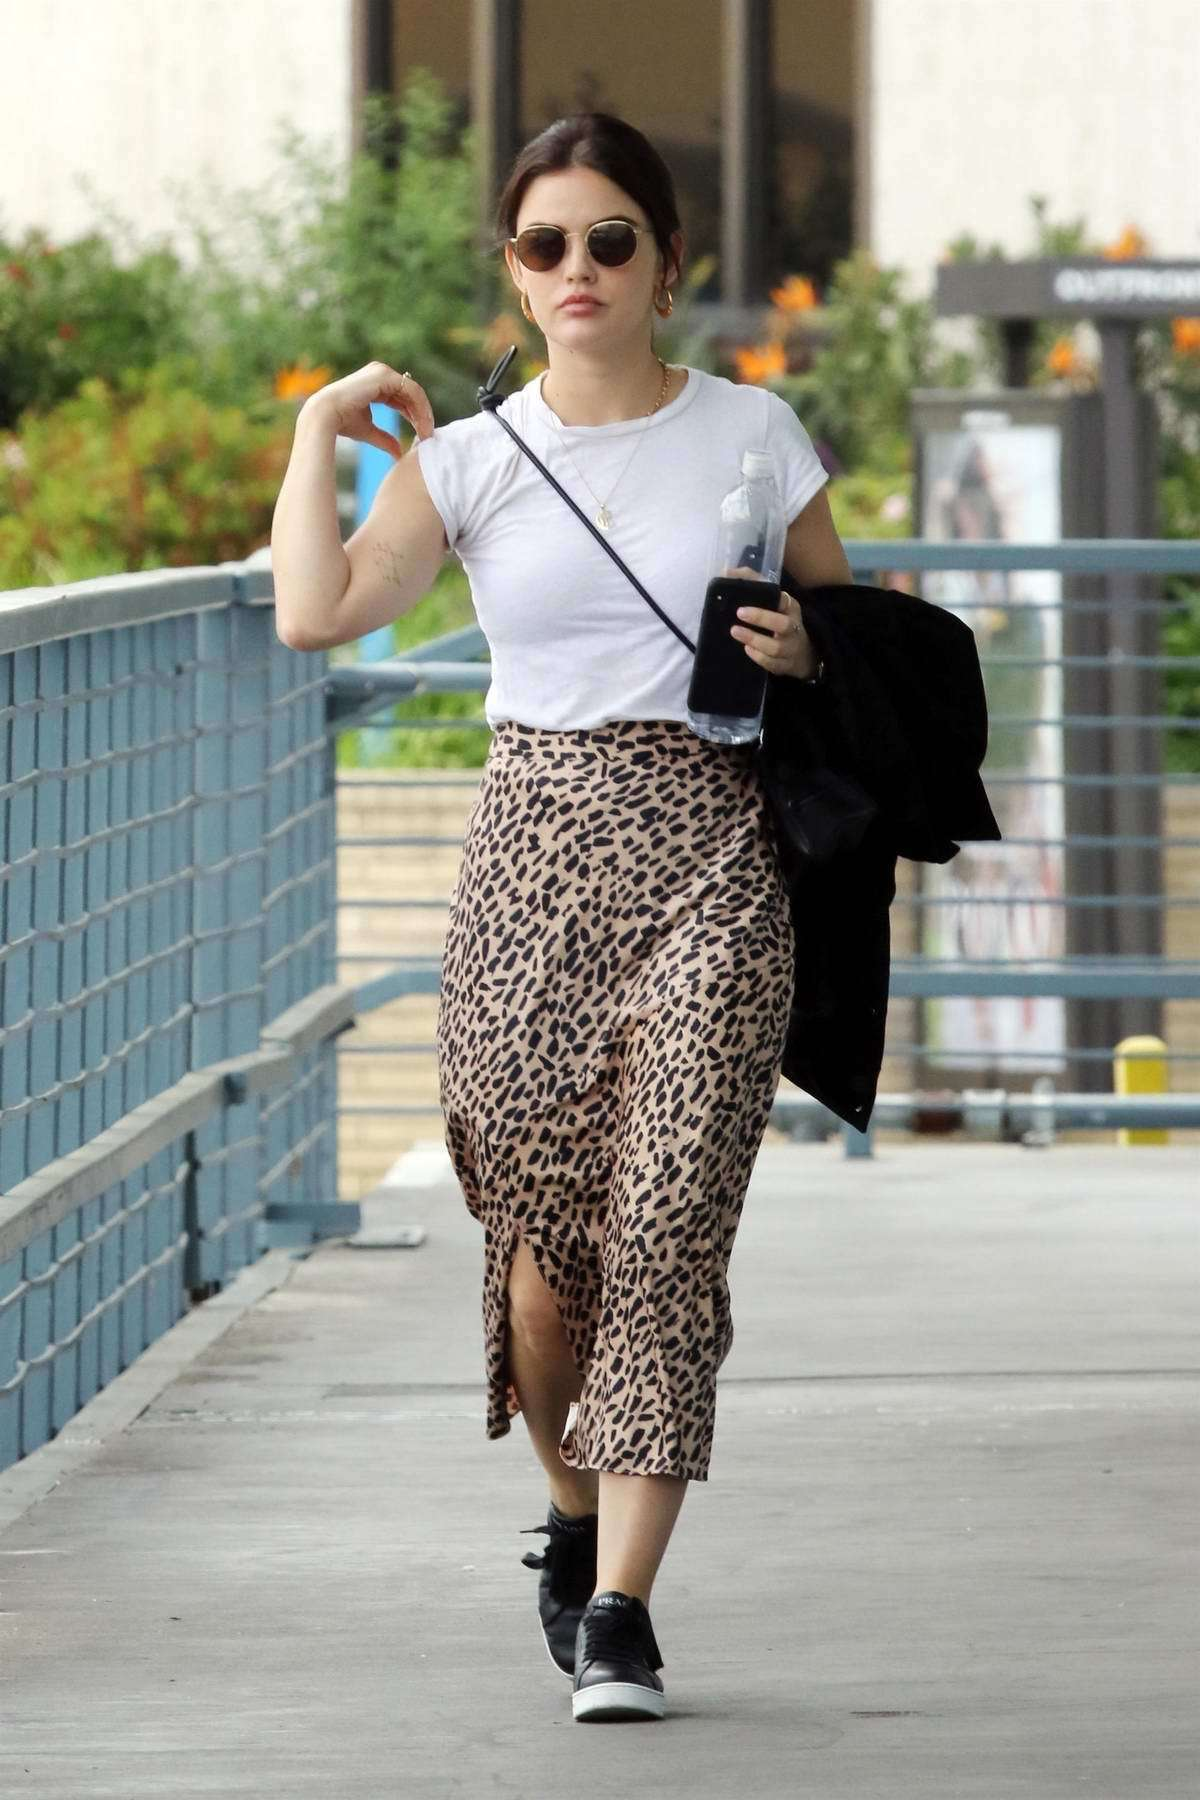 https://picture-cdn.wheretoget.com/sz9w3e-l-1800x1800-skirt-lucy+hale-celebrity-midi+skirt--animal+print-leopard+print-streetstyle.jpg